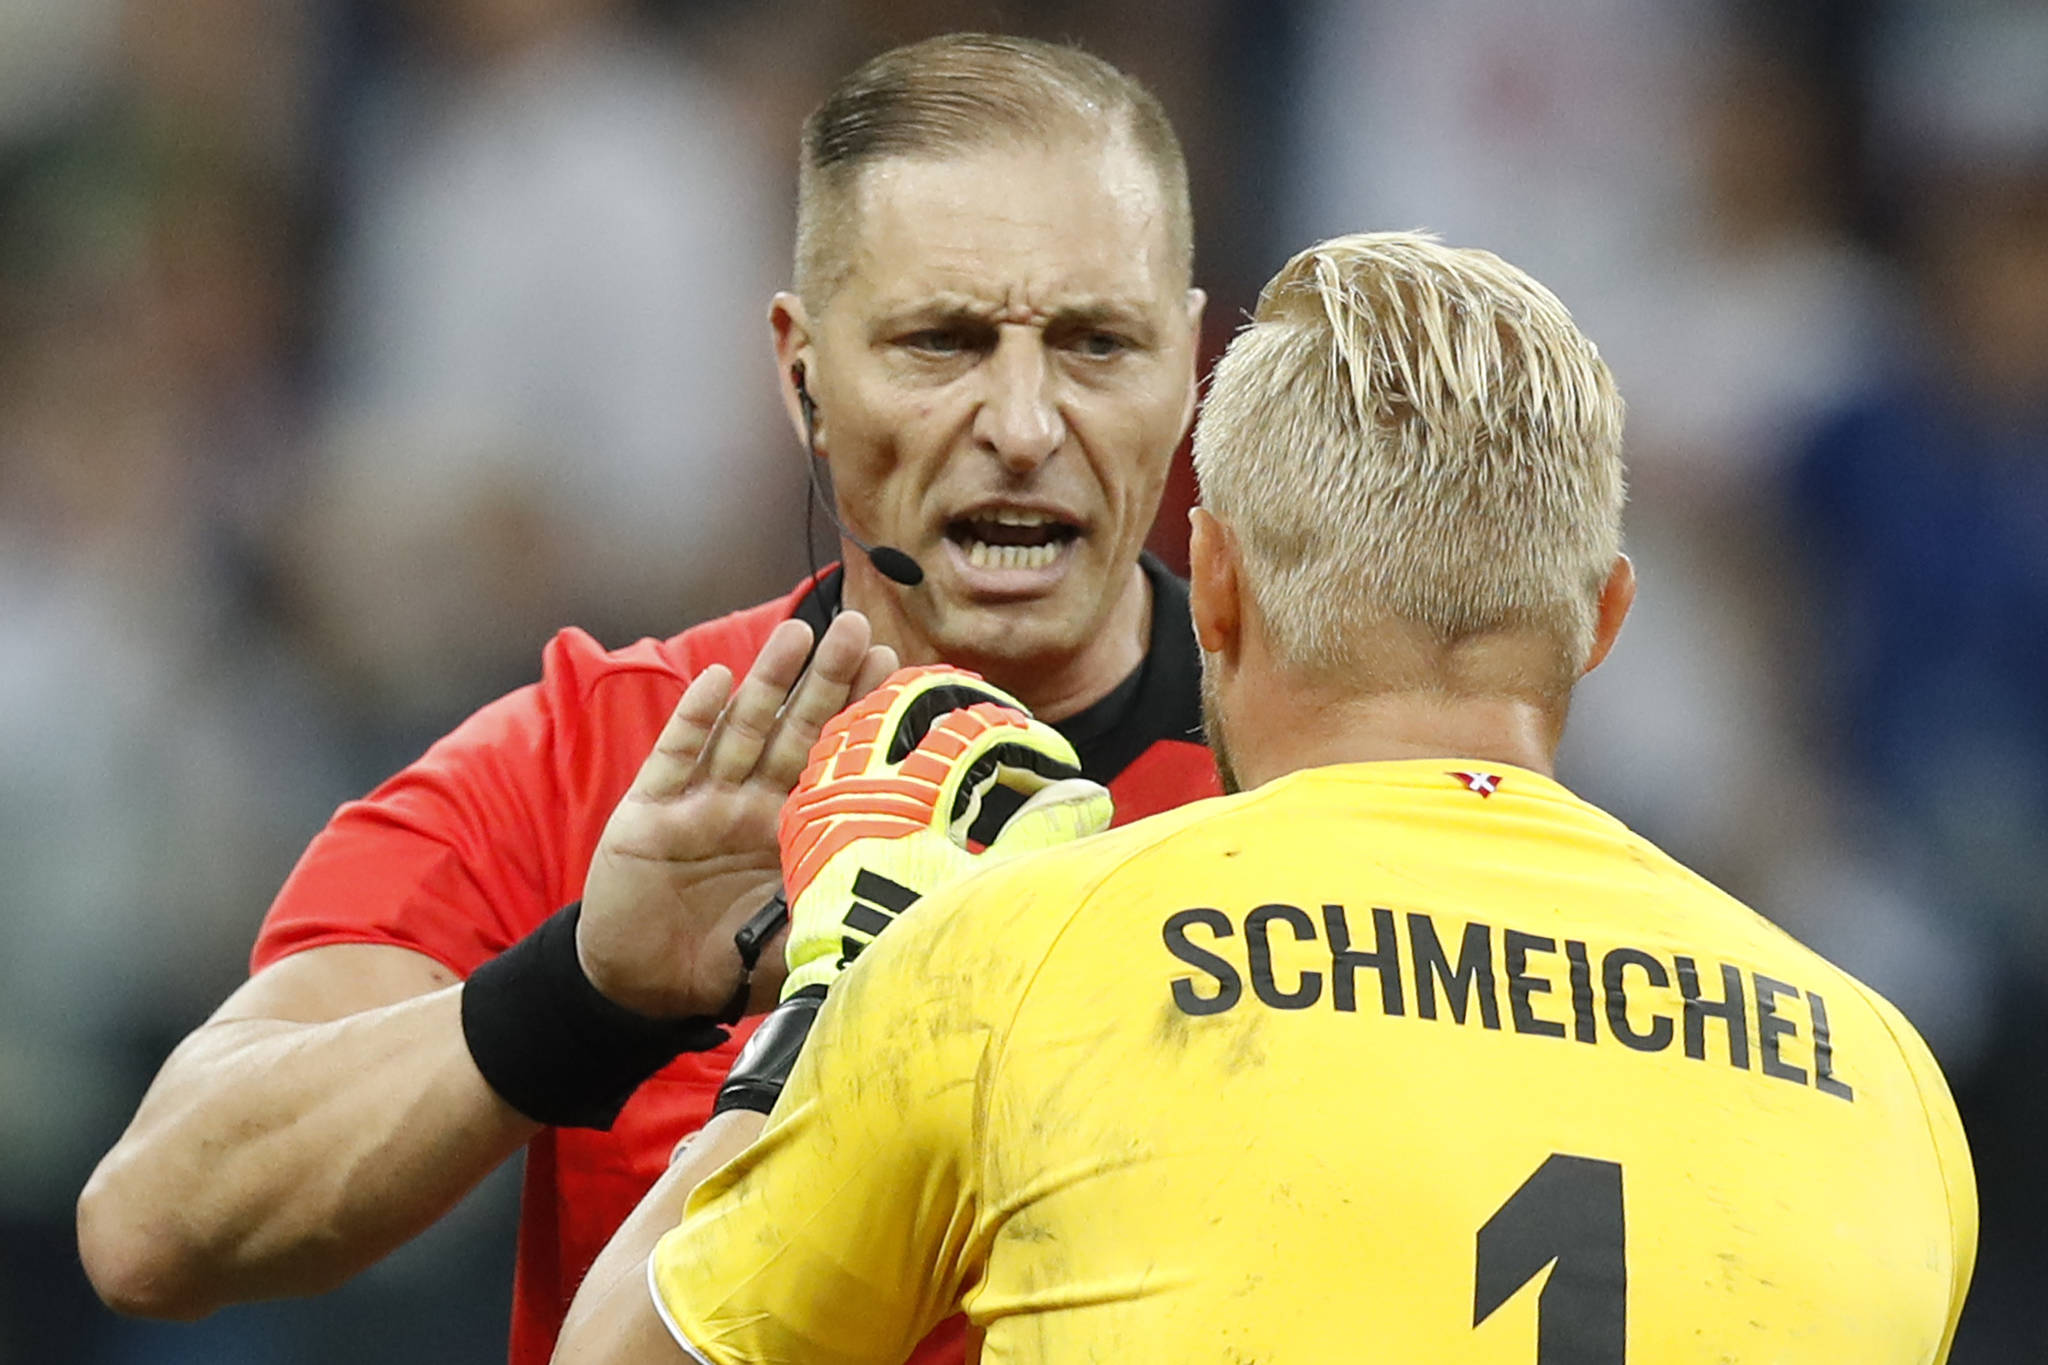 Denmark goalkeeper Kasper Schmeichel, right, speaks to Referee Nestor Pitana from Argentina during the round of 16 match between Croatia and Denmark at the 2018 soccer World Cup in the Nizhny Novgorod Stadium, in Nizhny Novgorod , Russia, Sunday, July 1, 2018. (AP Photo/Efrem Lukatsky) <저작권자(c) 연합뉴스, 무단 전재-재배포 금지>